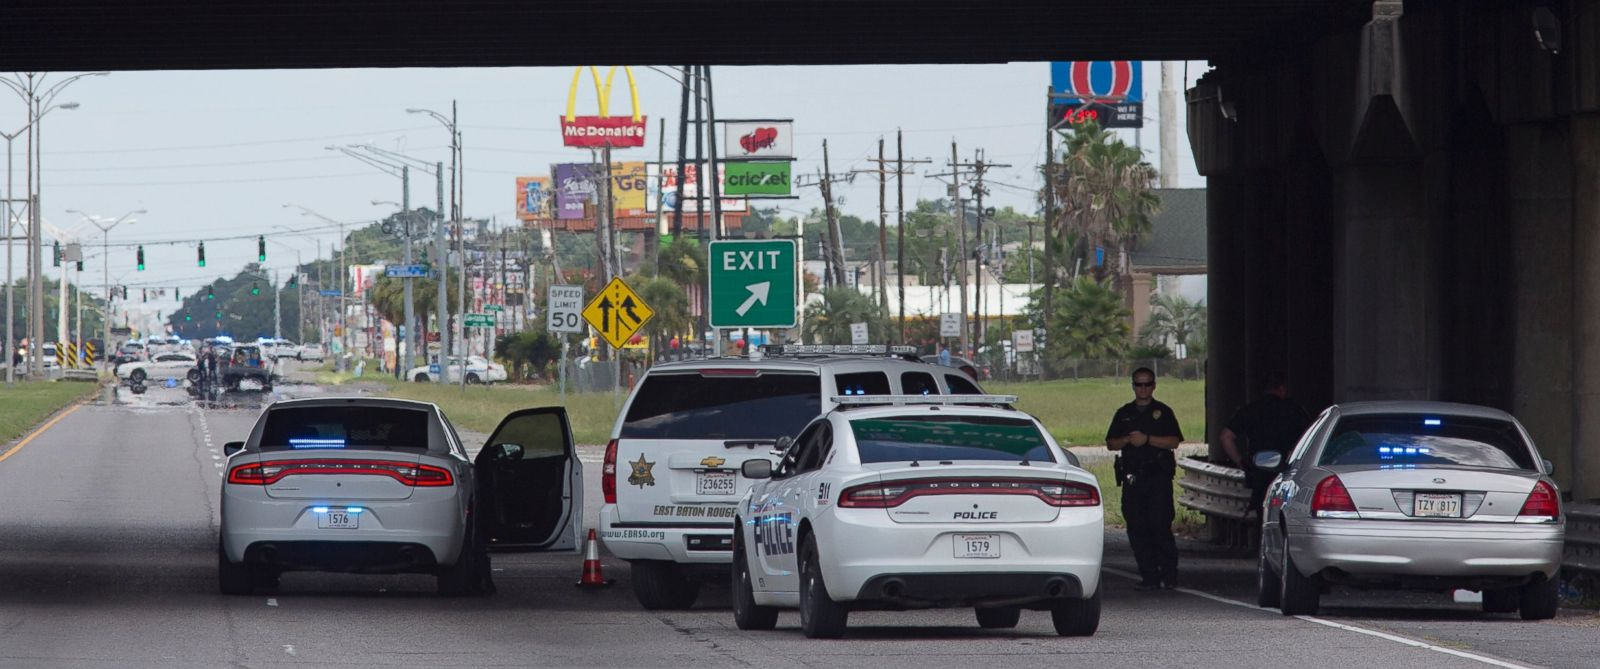 PHOTO: Baton Rouge Police block Airline Highway after police were shot in Baton Rouge, Louisiana, July 17, 2016.